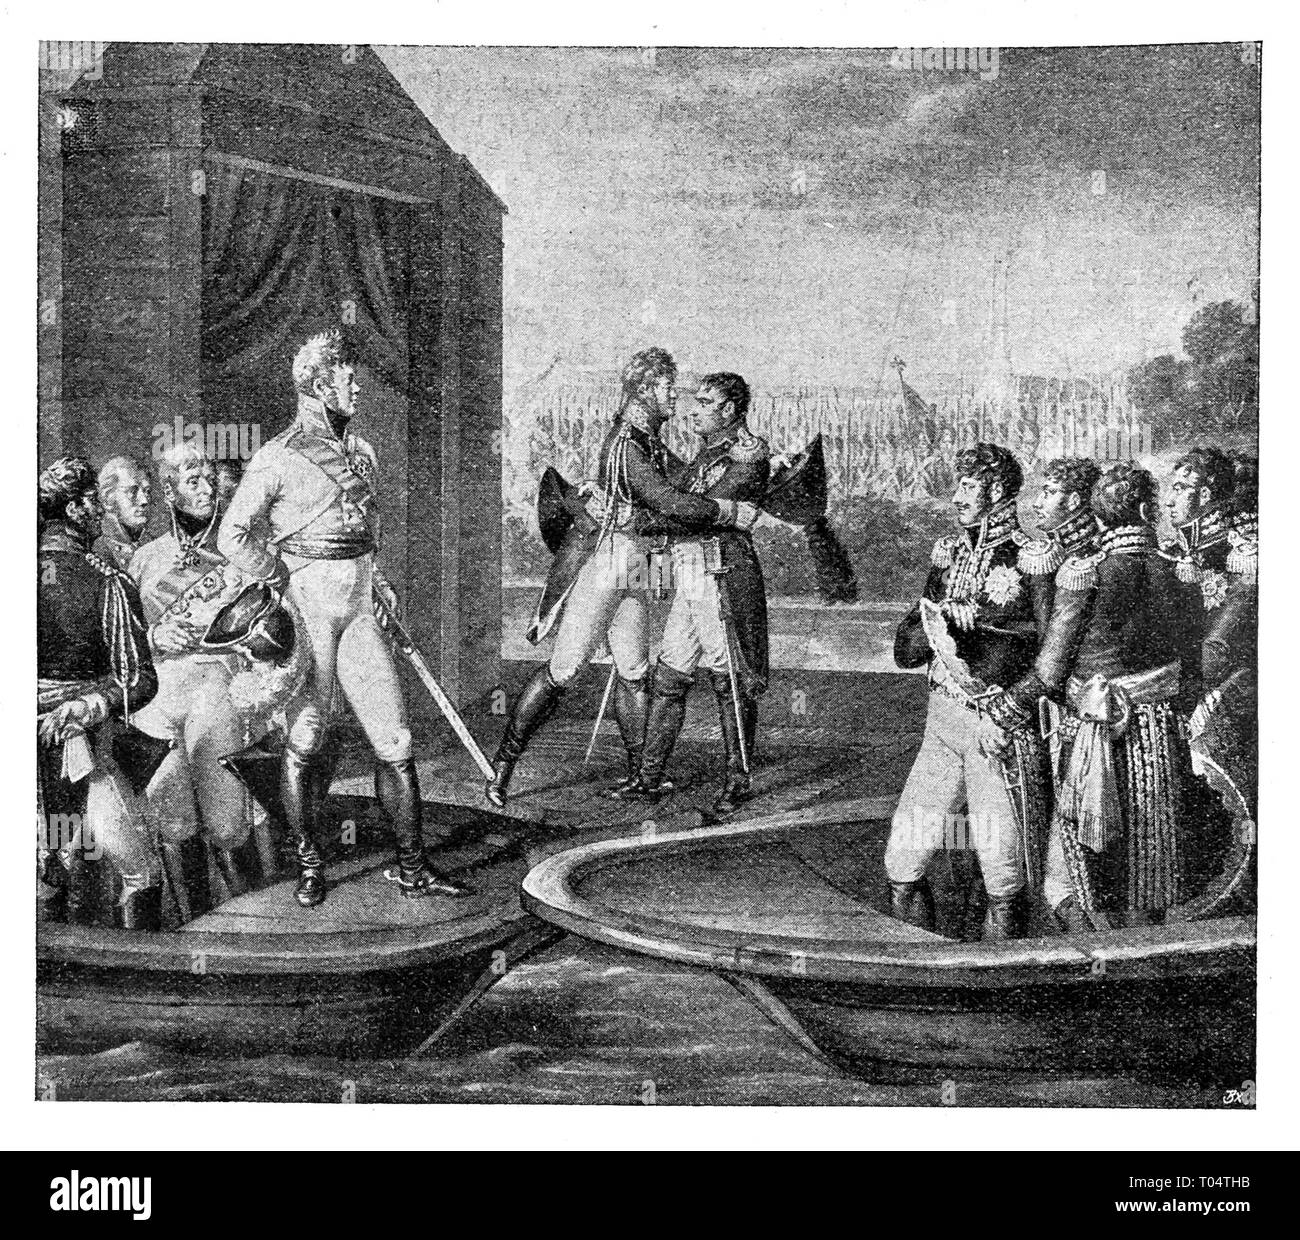 The meeting of Napoleon with Emperor Alexander II in Tilsit on the banks of the Neman River on June 25, 1807. L. Wolf / National Gallery in Berlin /. Digital improved reproduction from Illustrated overview of the life of mankind in the 19th century, 1901 edition, Marx publishing house, St. Petersburg. - Stock Image